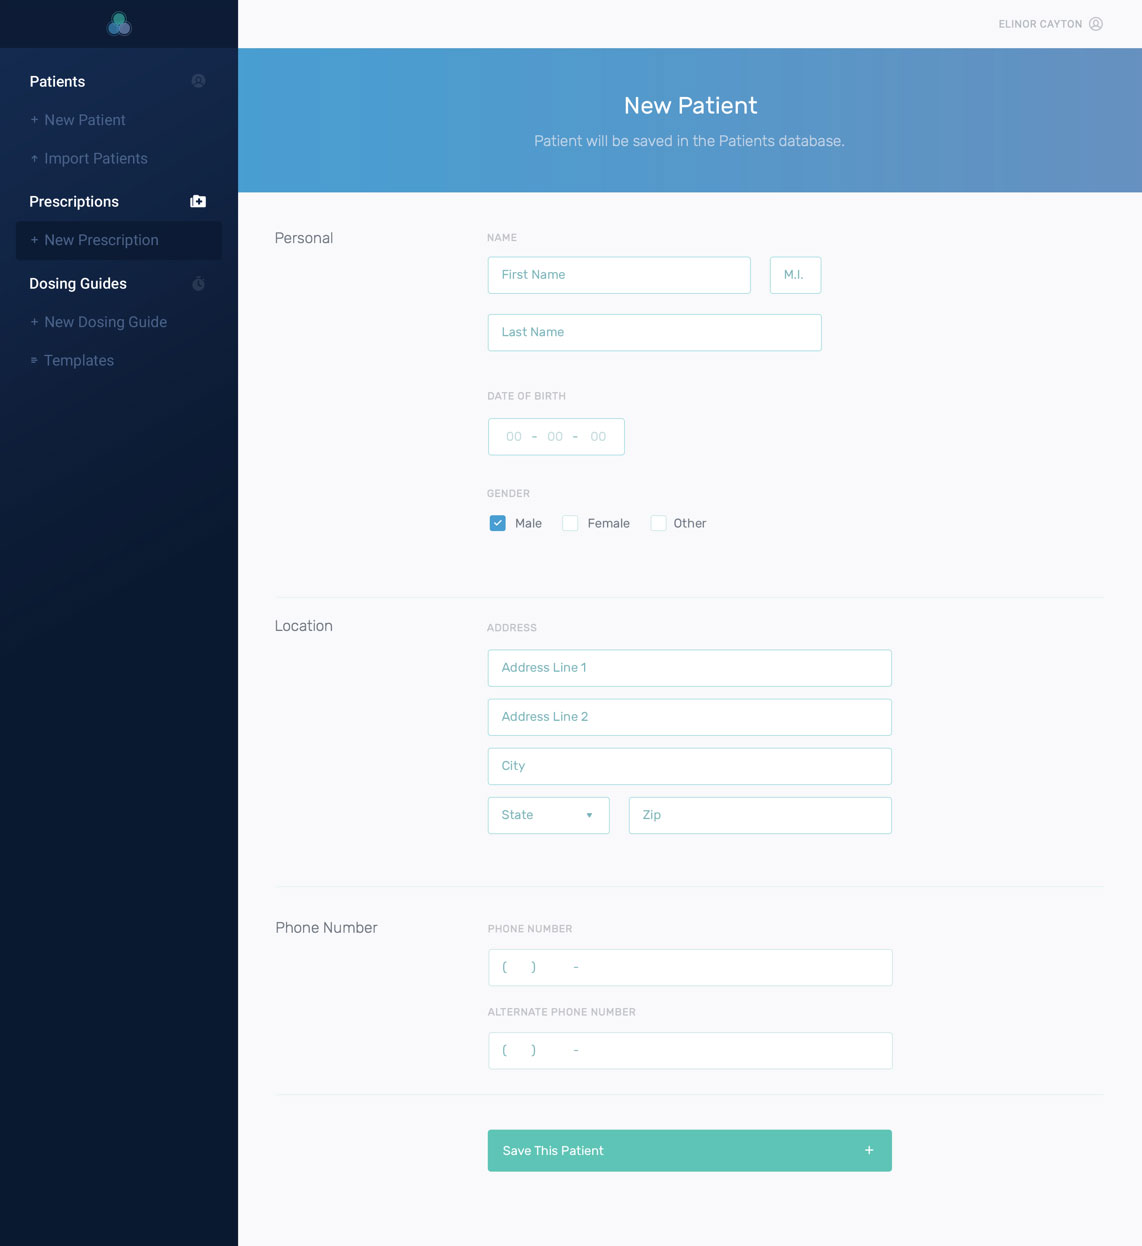 Design of the new patient form in the Daavlin app